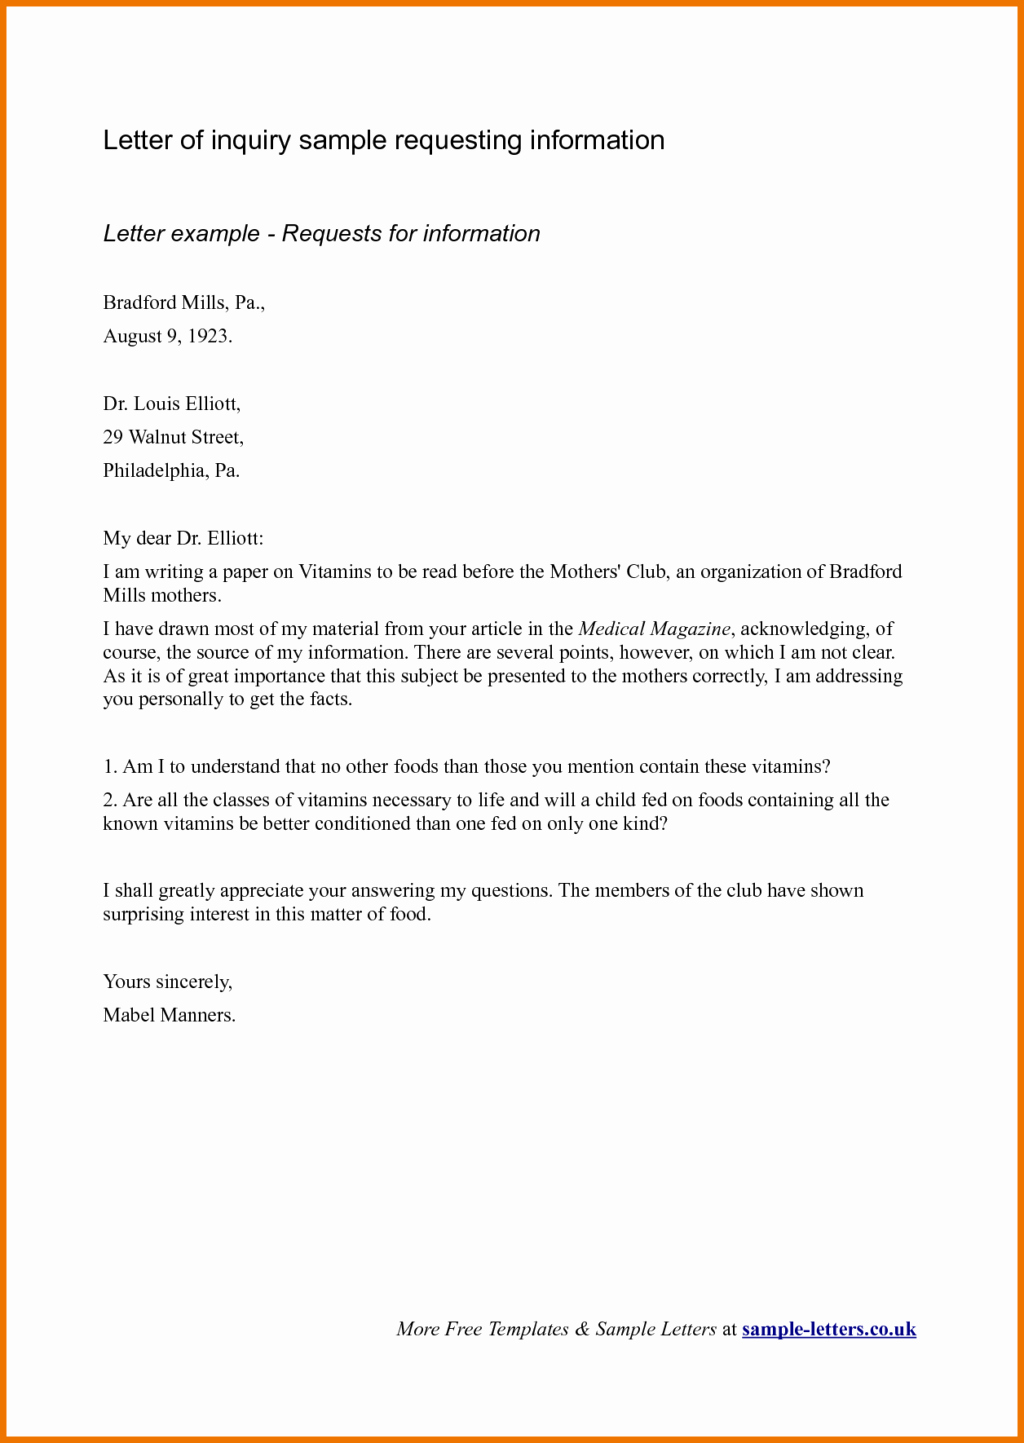 Sample Of Business Letters Best Of Business Inquiry Letter Sample for Requesting Information